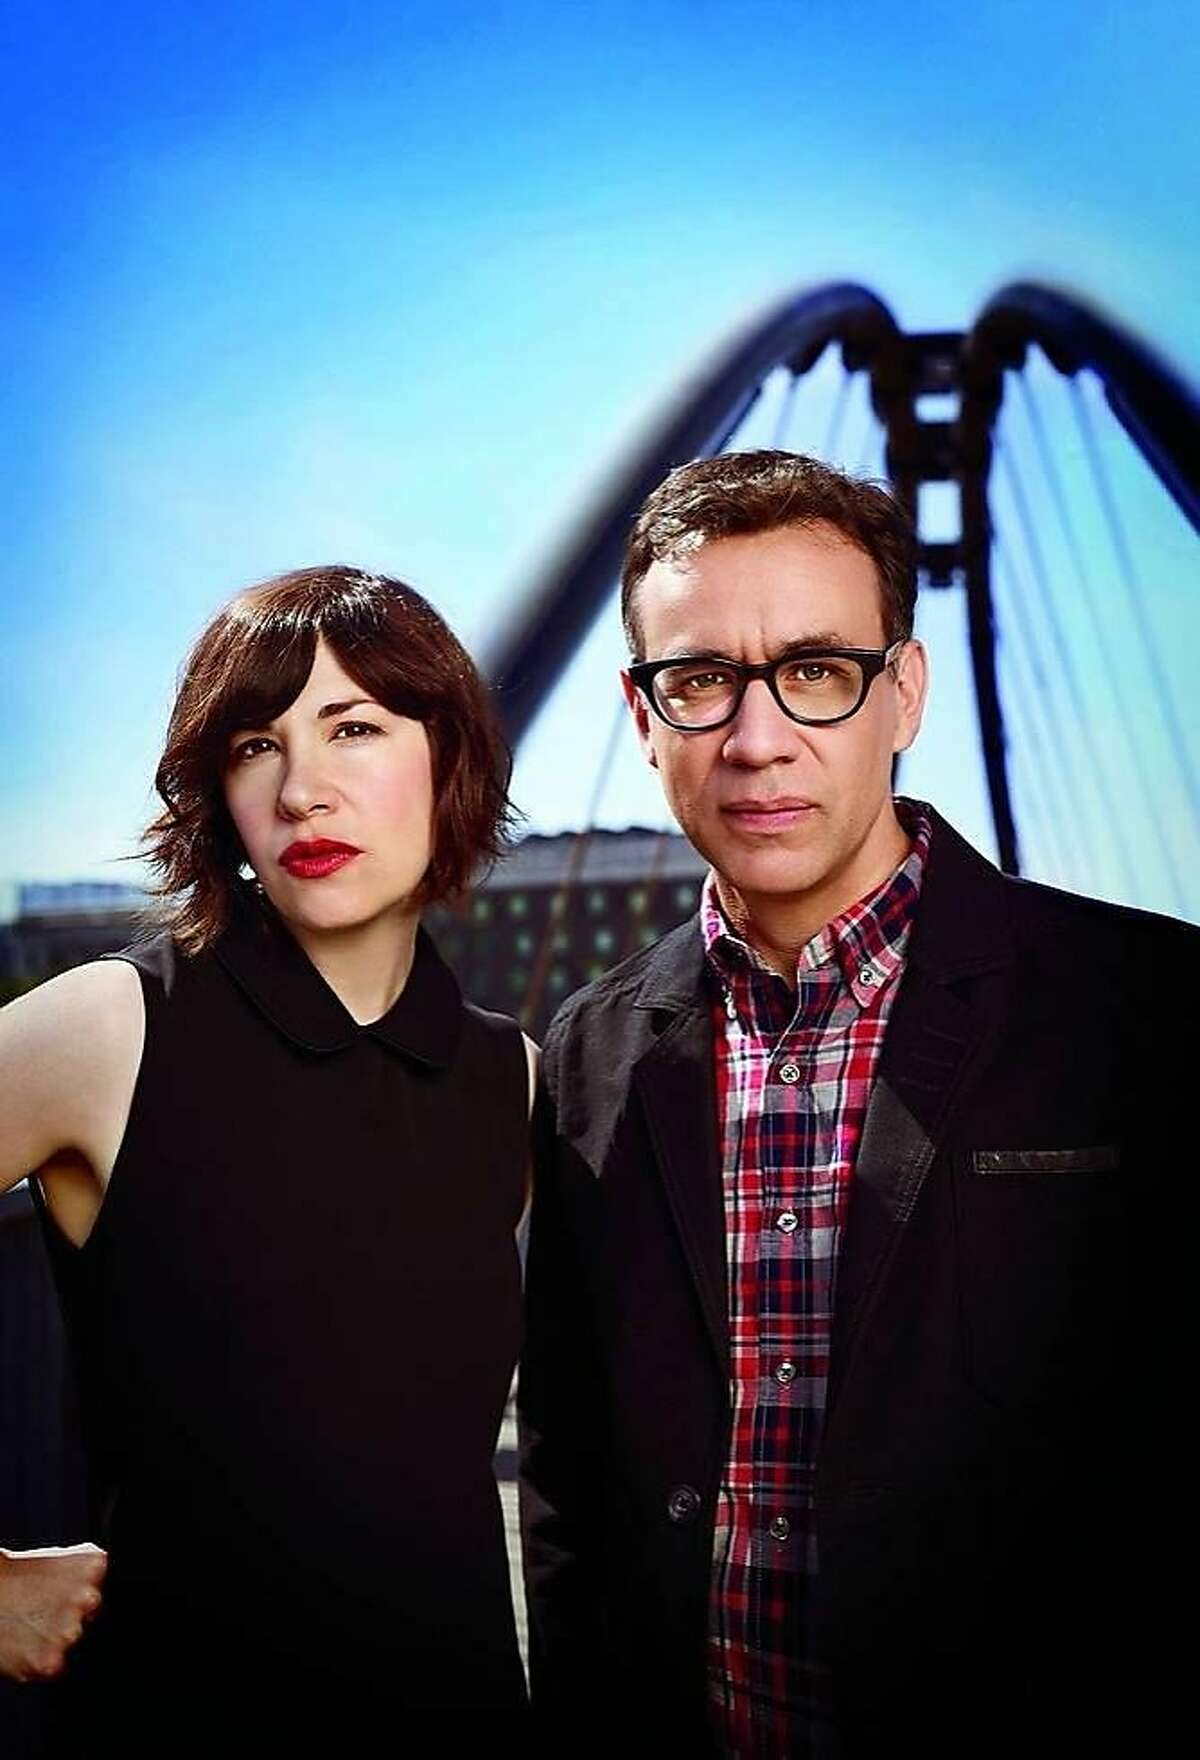 """The cast of """"Portlandia,"""" including Carrie Brownstein and Fred Armisen, are appearing at the 12th annual SF Sketchfest and Comedy Festival."""